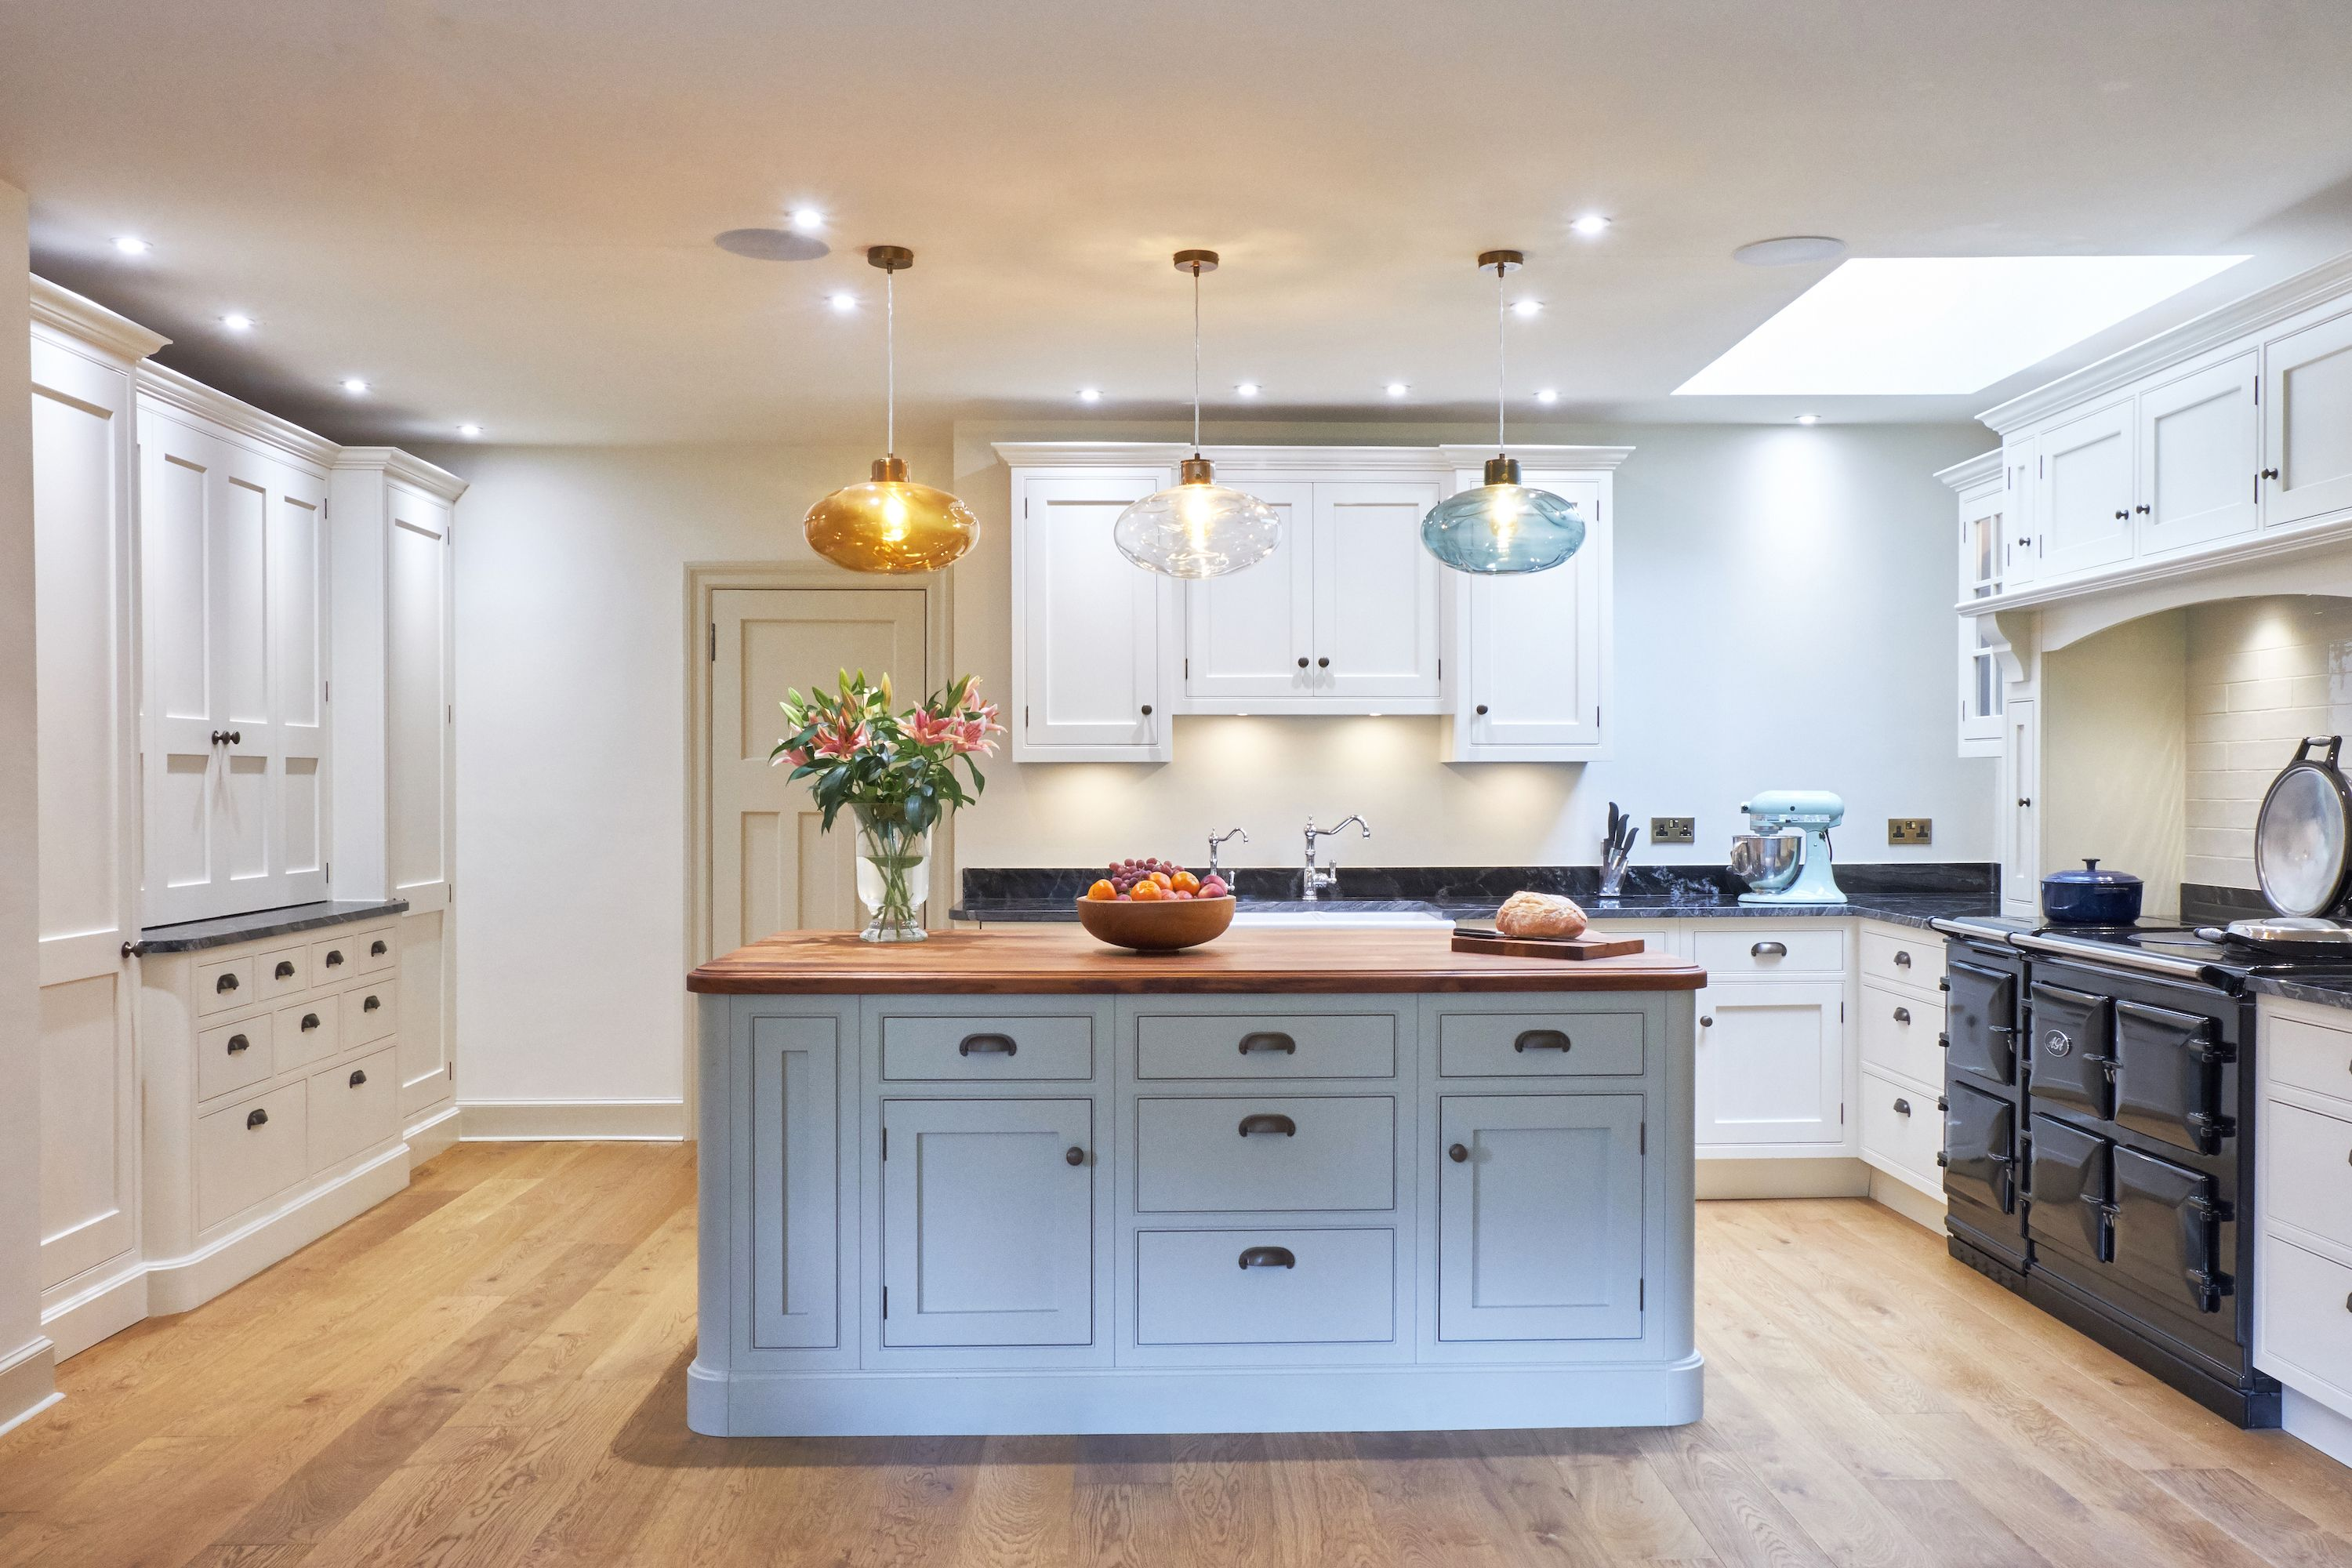 Charmant Bespoke Kitchen Remodel, Cream And Blue, Kitchen Island, Aga, Farrow And  Ball